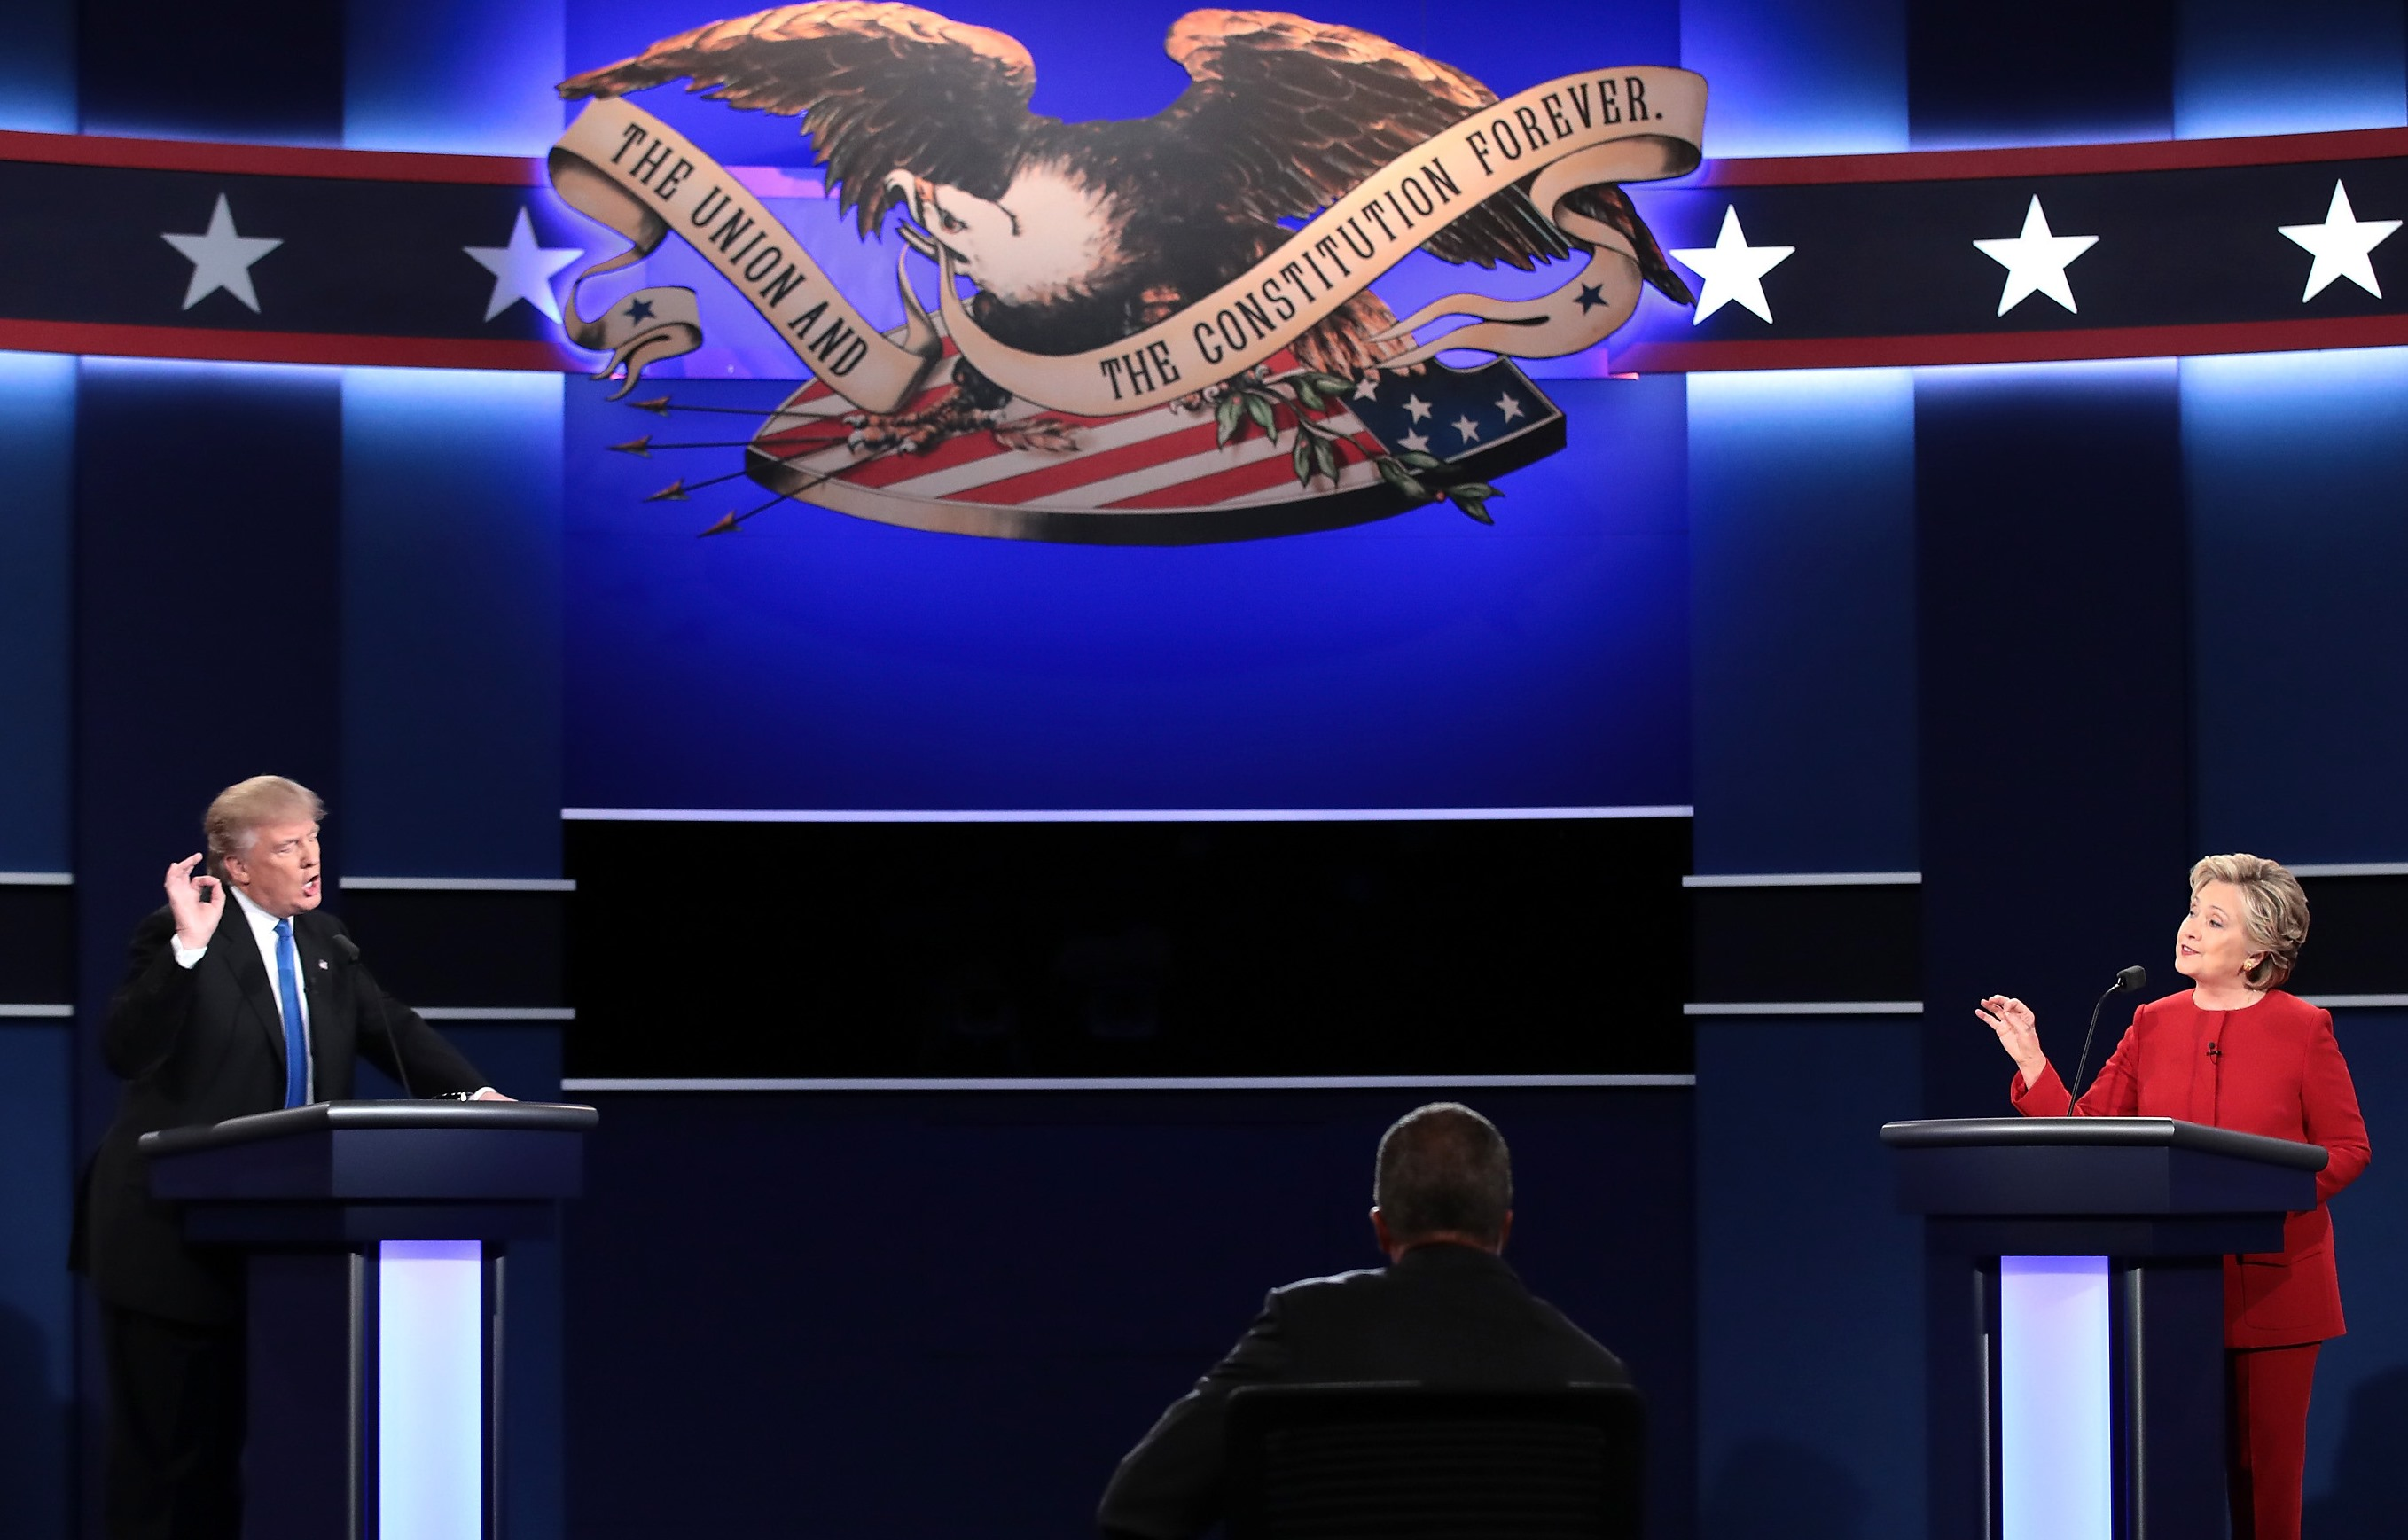 Republican presidential nominee Donald Trump speaks as Democratic presidential nominee Hillary Clinton and moderator Lester Holt listen during the presidential debate at Hofstra University on Sept. 26, 2016, in Hempstead, N.Y. (Getty Images)